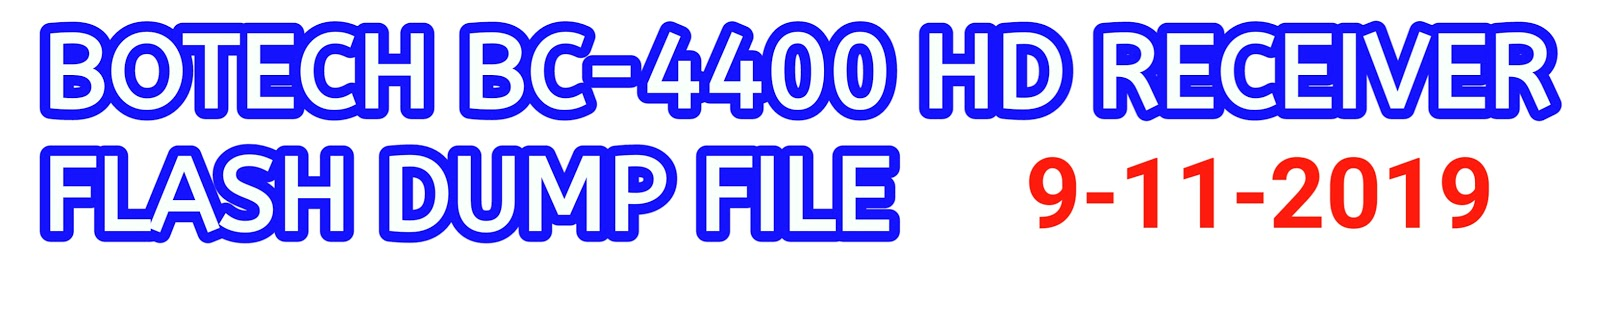 BOTECH BC-4400 HD RECEIVER FLASH DUMP FILE